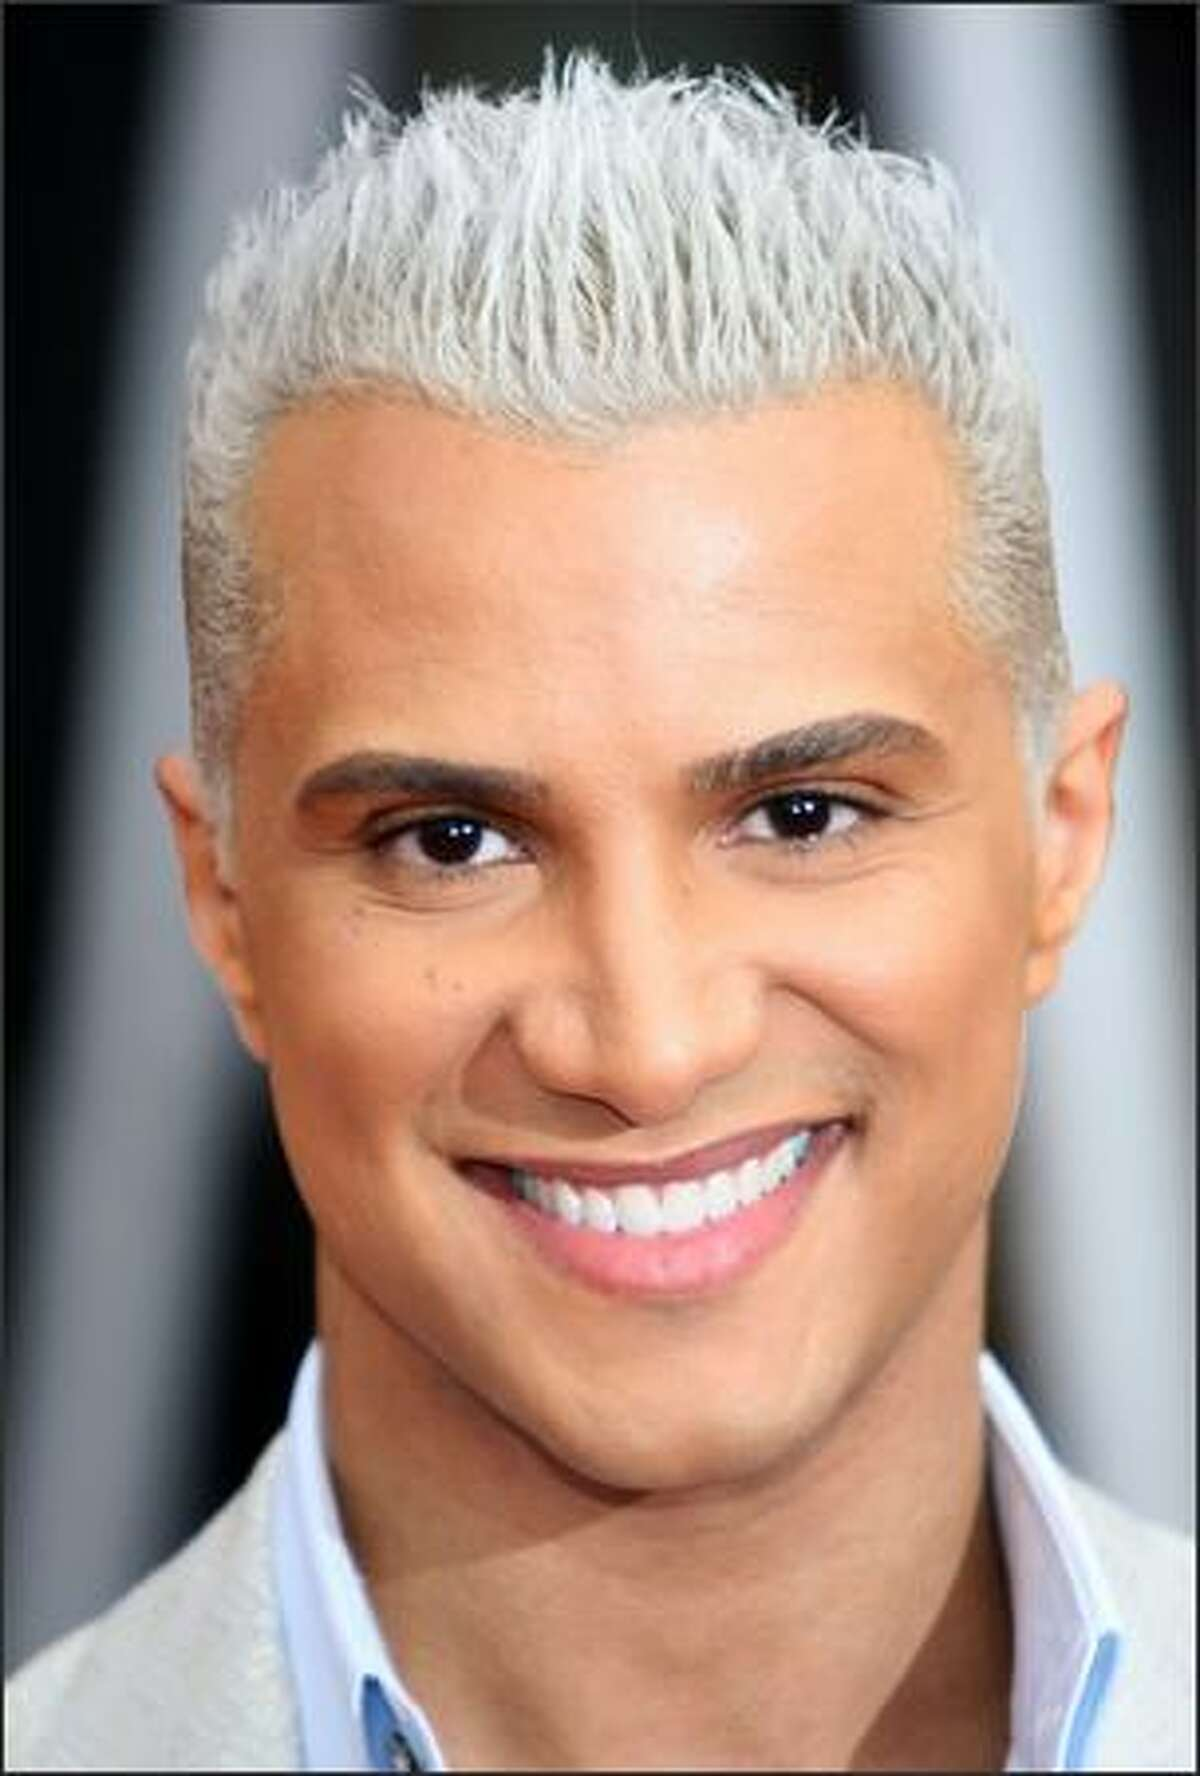 Stylist Jay Manuel arrives at the 14th annual Screen Actors Guild awards held at the Shrine Auditorium on January 27, 2008 in Los Angeles, Calif.